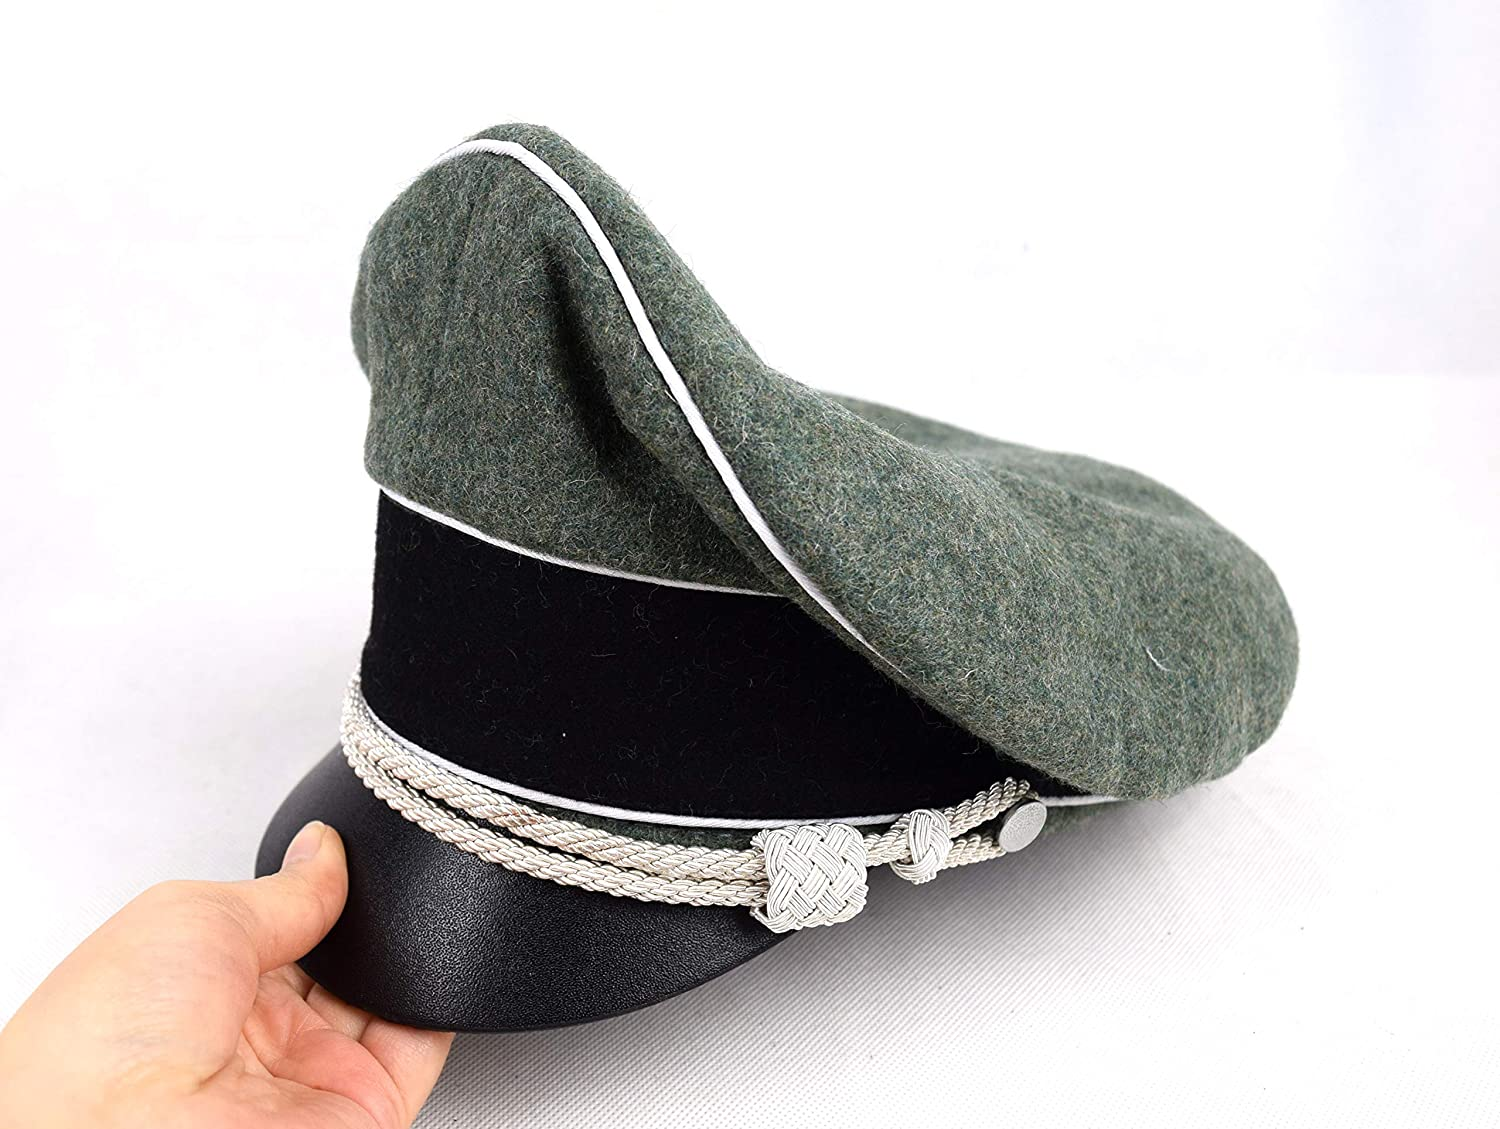 Replica WW2 German Army Field Marshals Generals Officers Crusher Field Visor  Hat Cap W White Pipe Silver Chin Cord at Amazon Men s Clothing store  adeda0bd2027